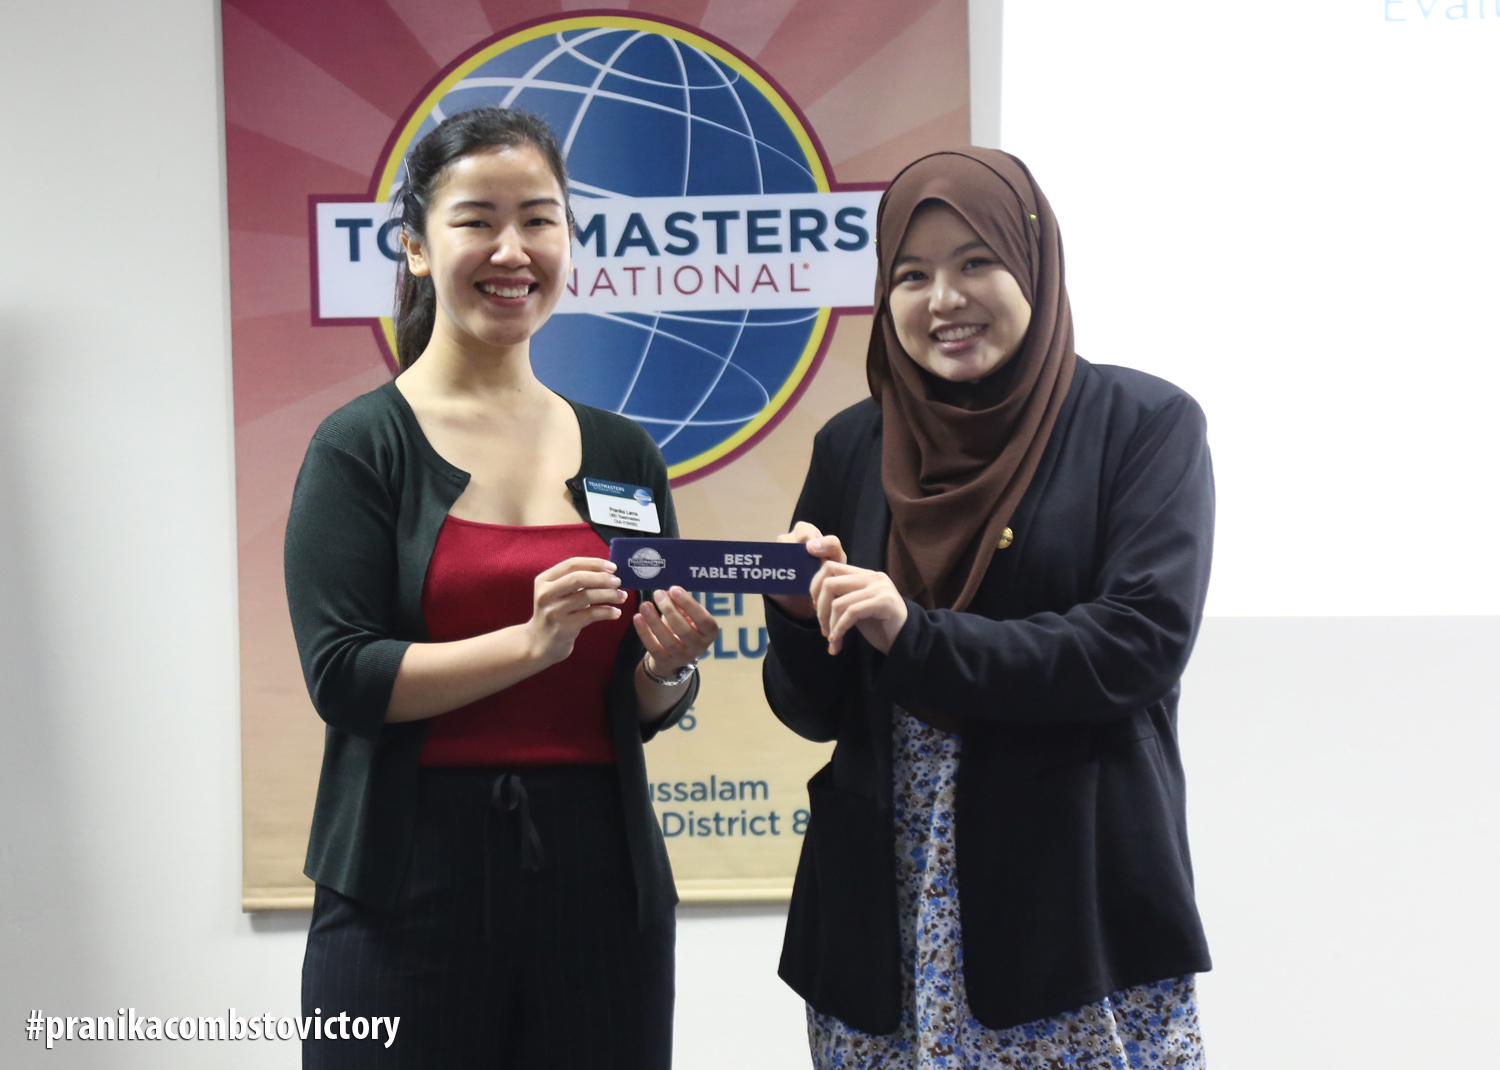 Pranika (left) receives Best Table Topics Ribbon from Awfa (right)